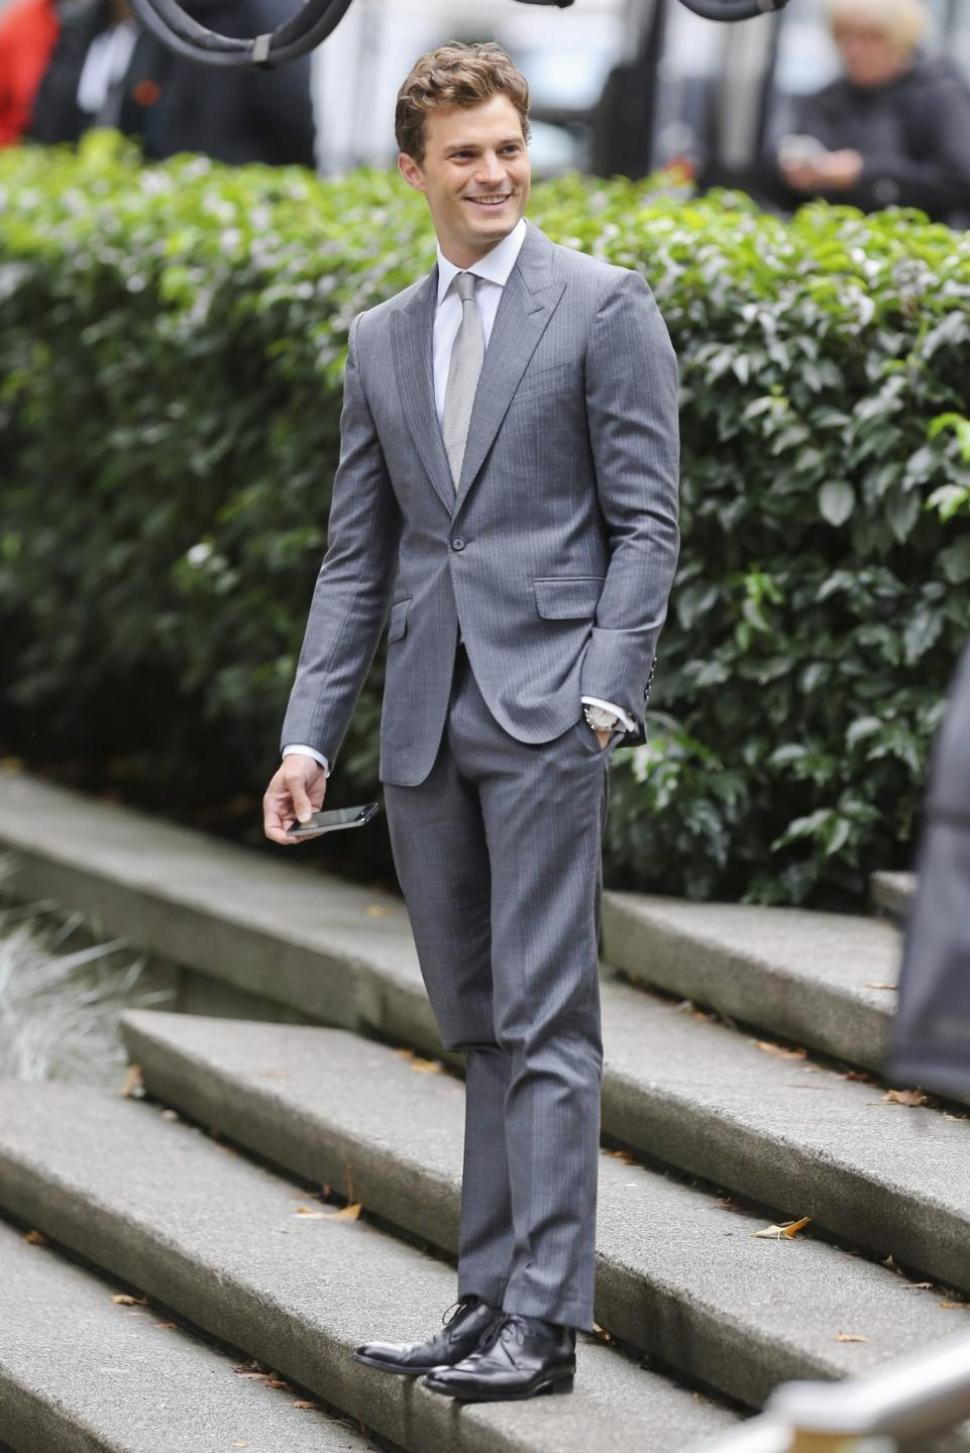 Jamie Dornan wearing Grey Suit, White Dress Shirt, Black Leather